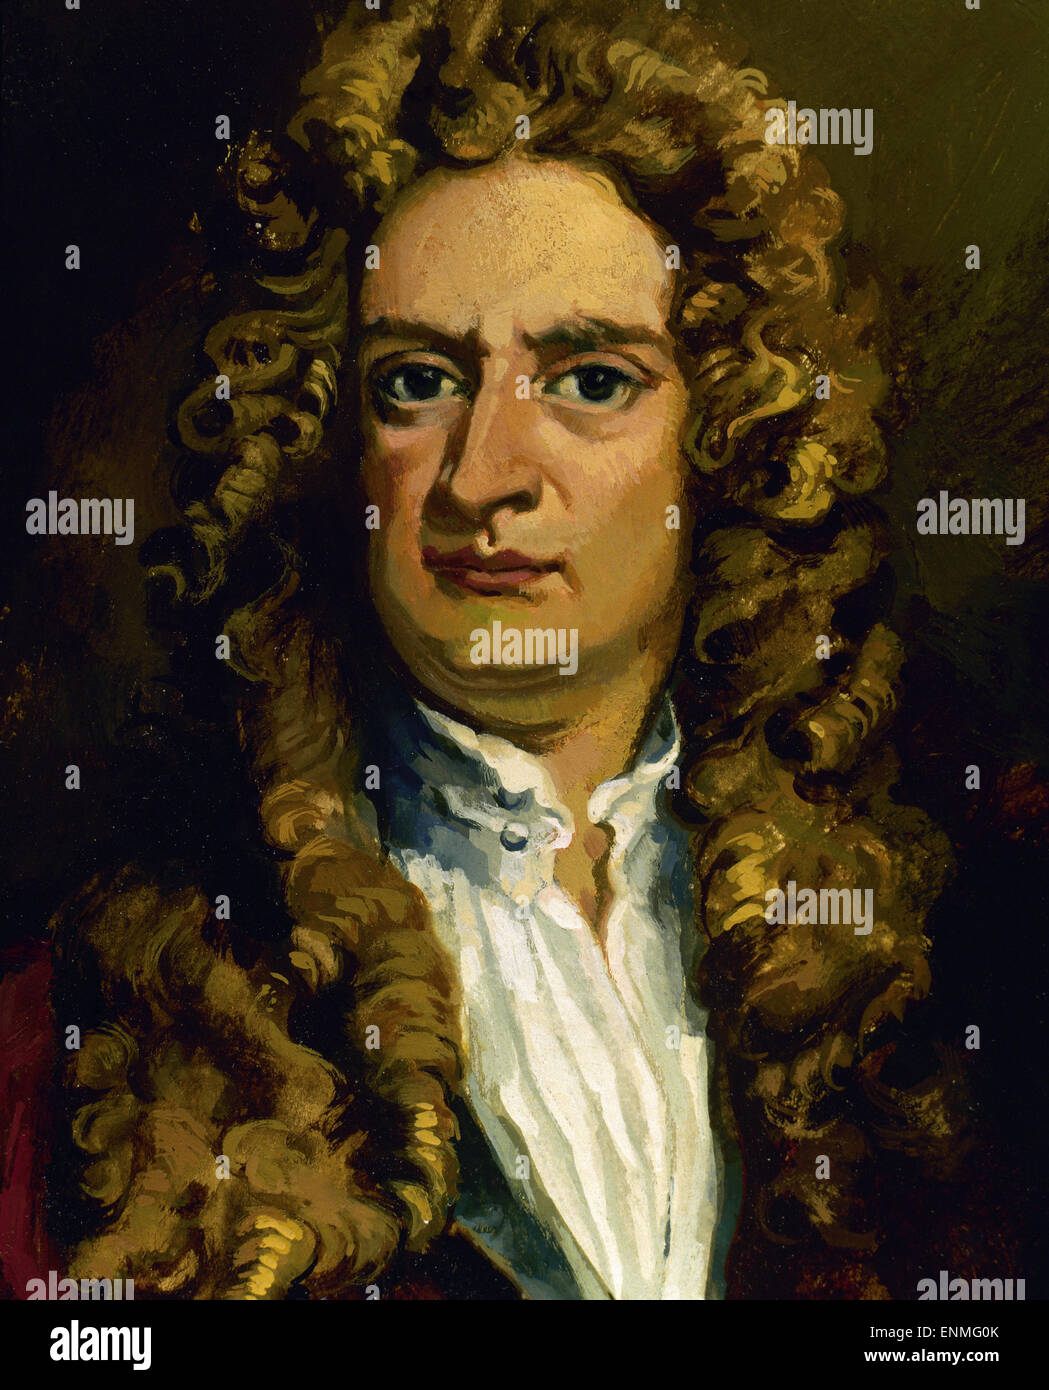 Isaac Newton (1642-1726). English physicist and mathematician. Portrait. Color. Stock Photo